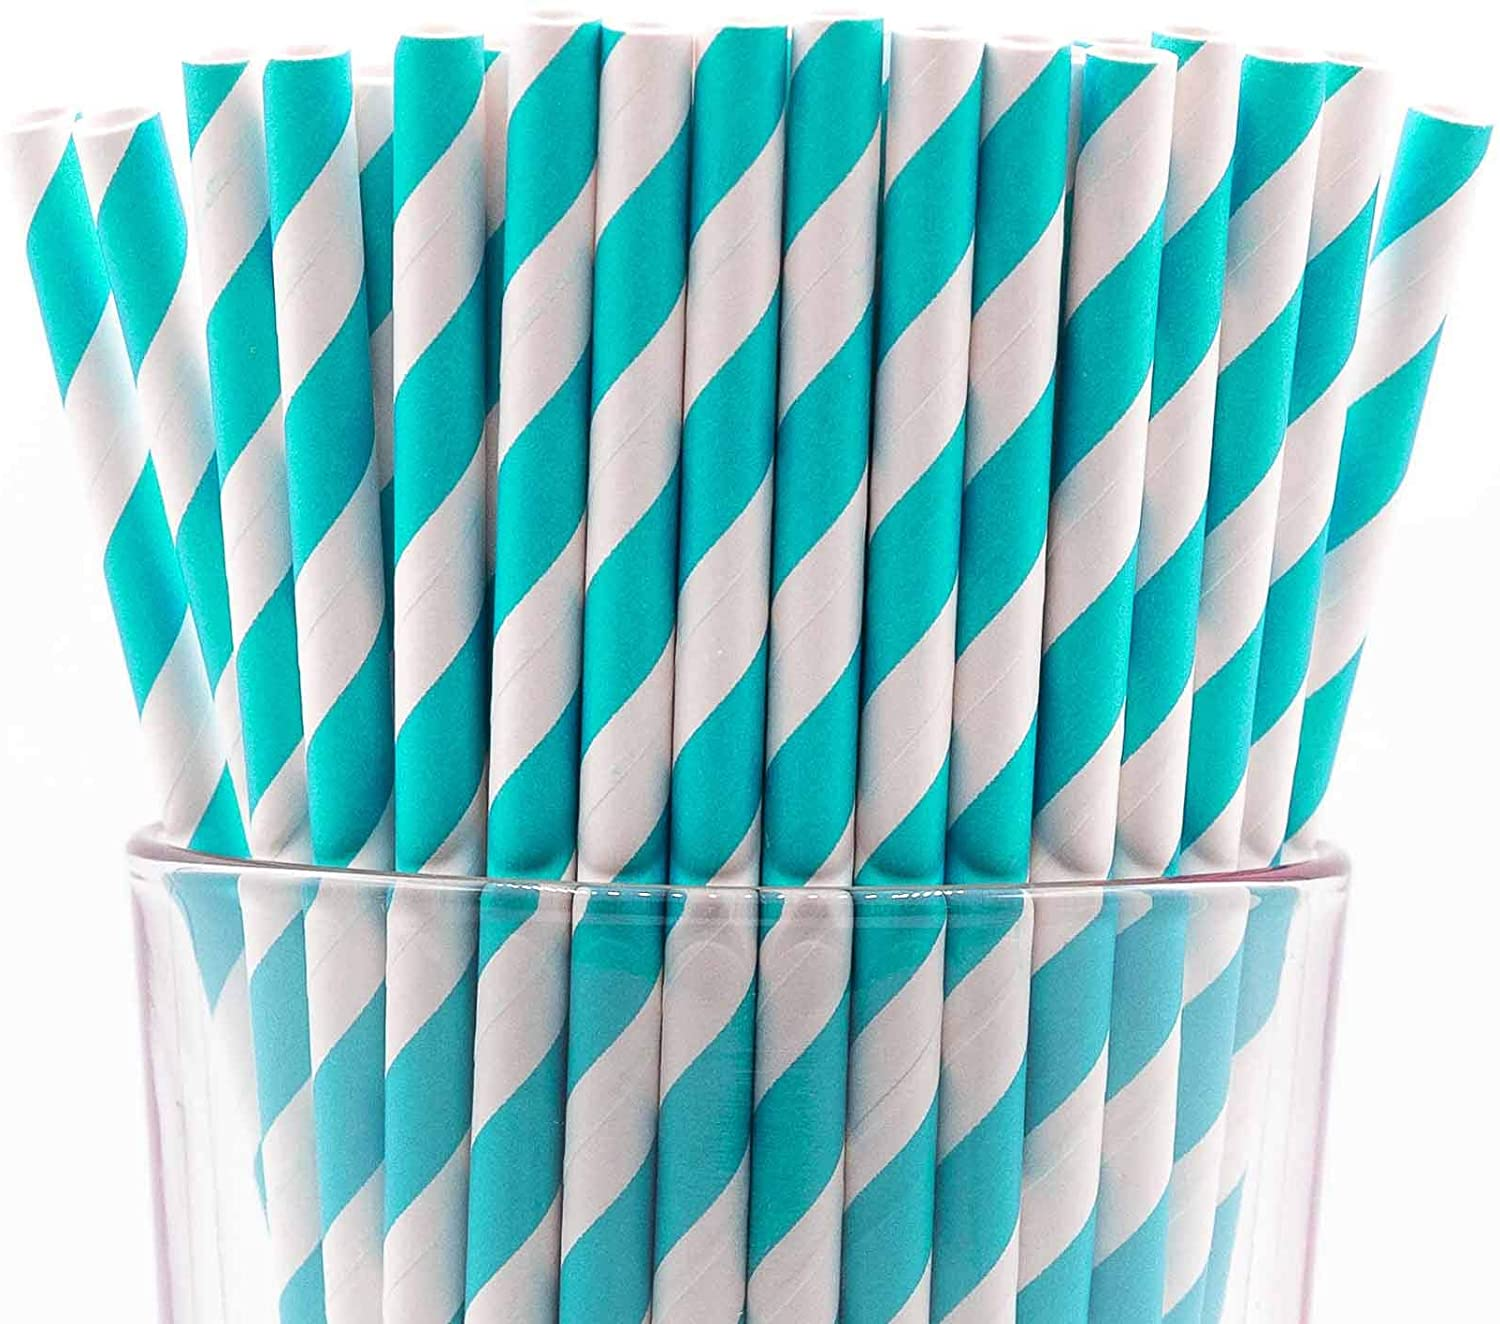 Pack of 300 Turquoise Swirls Biodegradable 4-Ply Paper Drinking Straws (Compostable, Non-toxic, BPA-free)